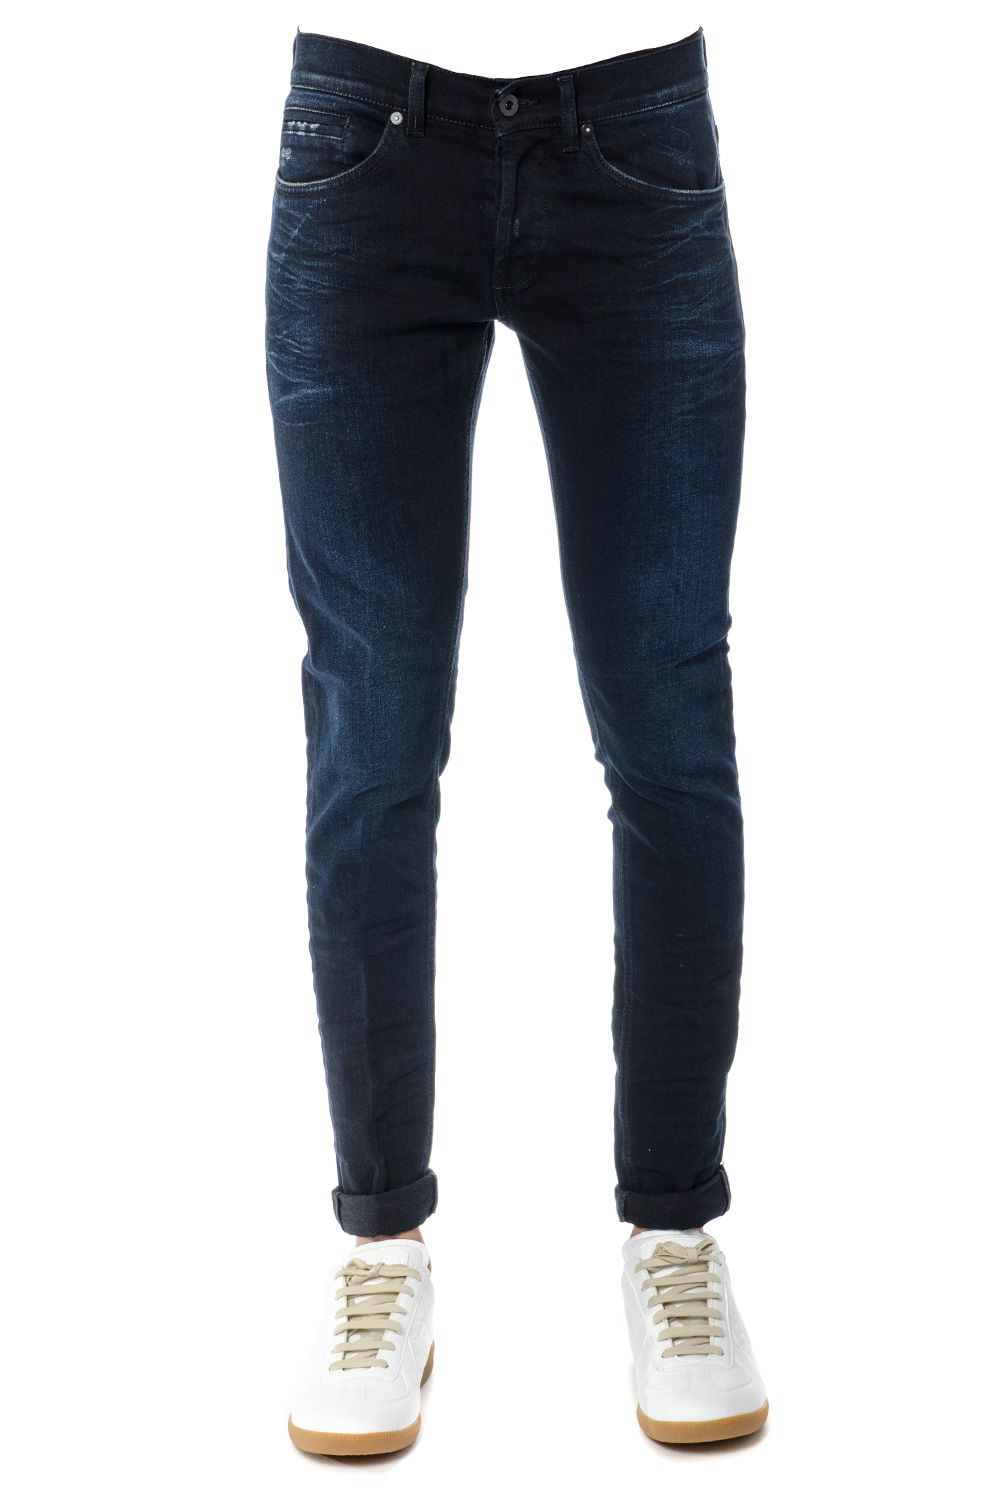 Dondup Dondup Classic Skinny Jeans